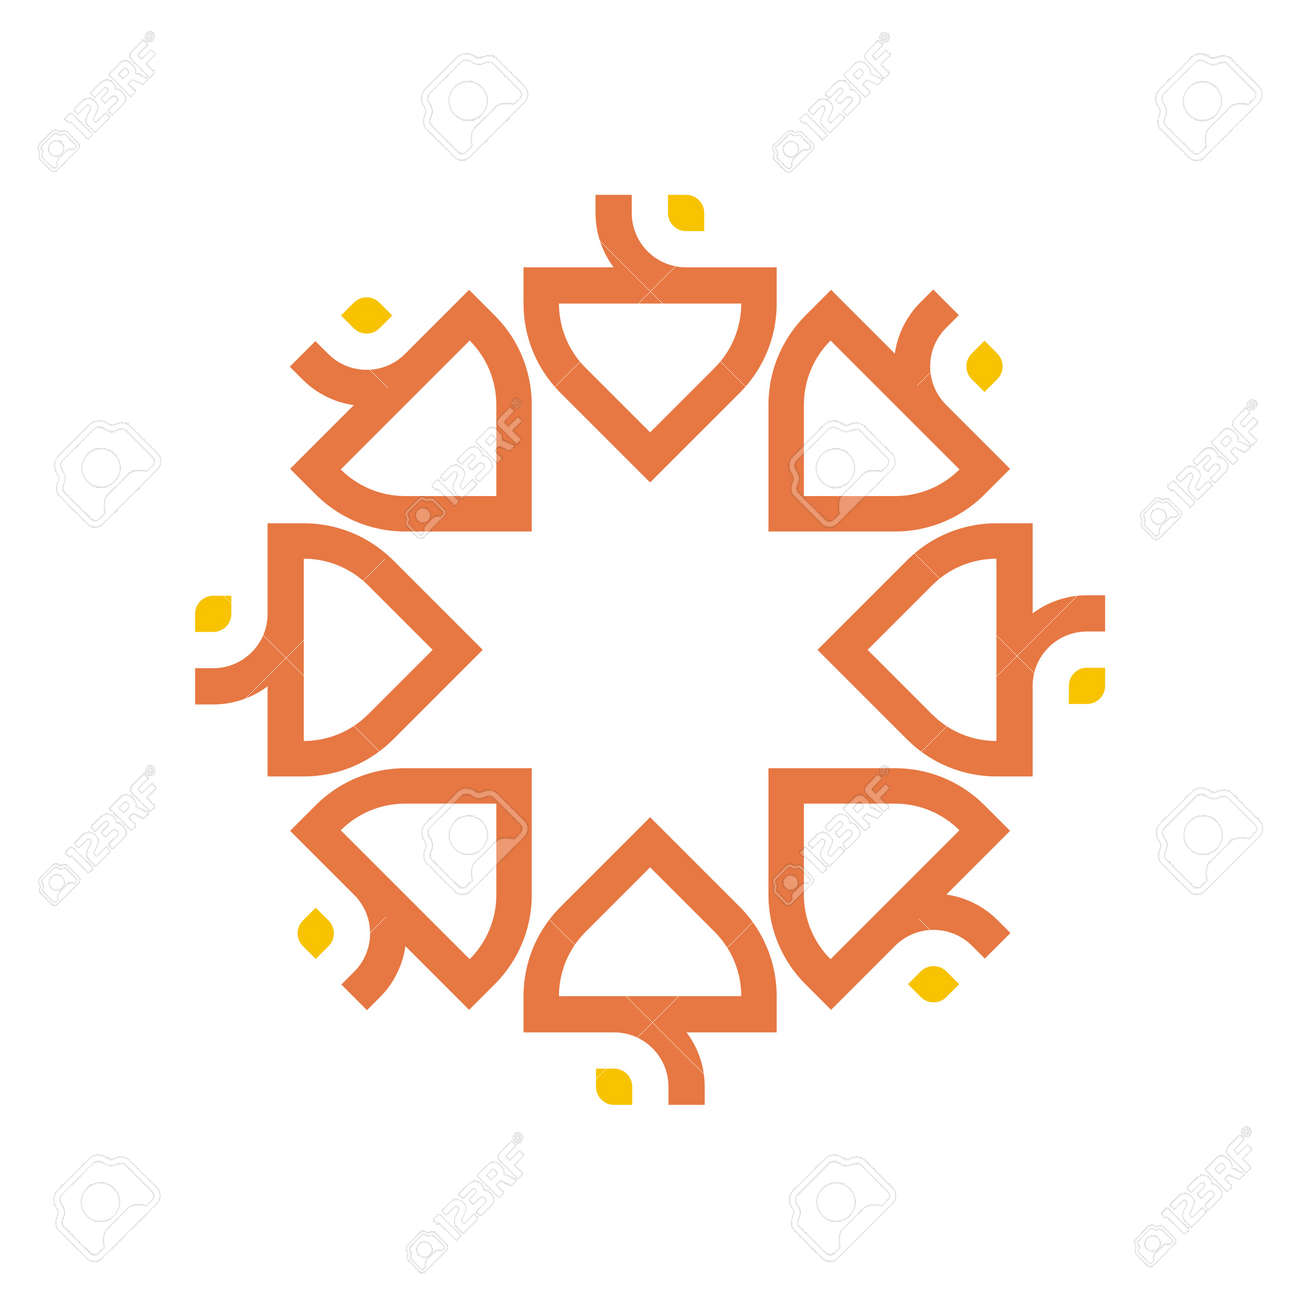 Logo design company name bussines abstract symbol icon royalty logo design company name bussines abstract symbol icon stock vector 45283489 buycottarizona